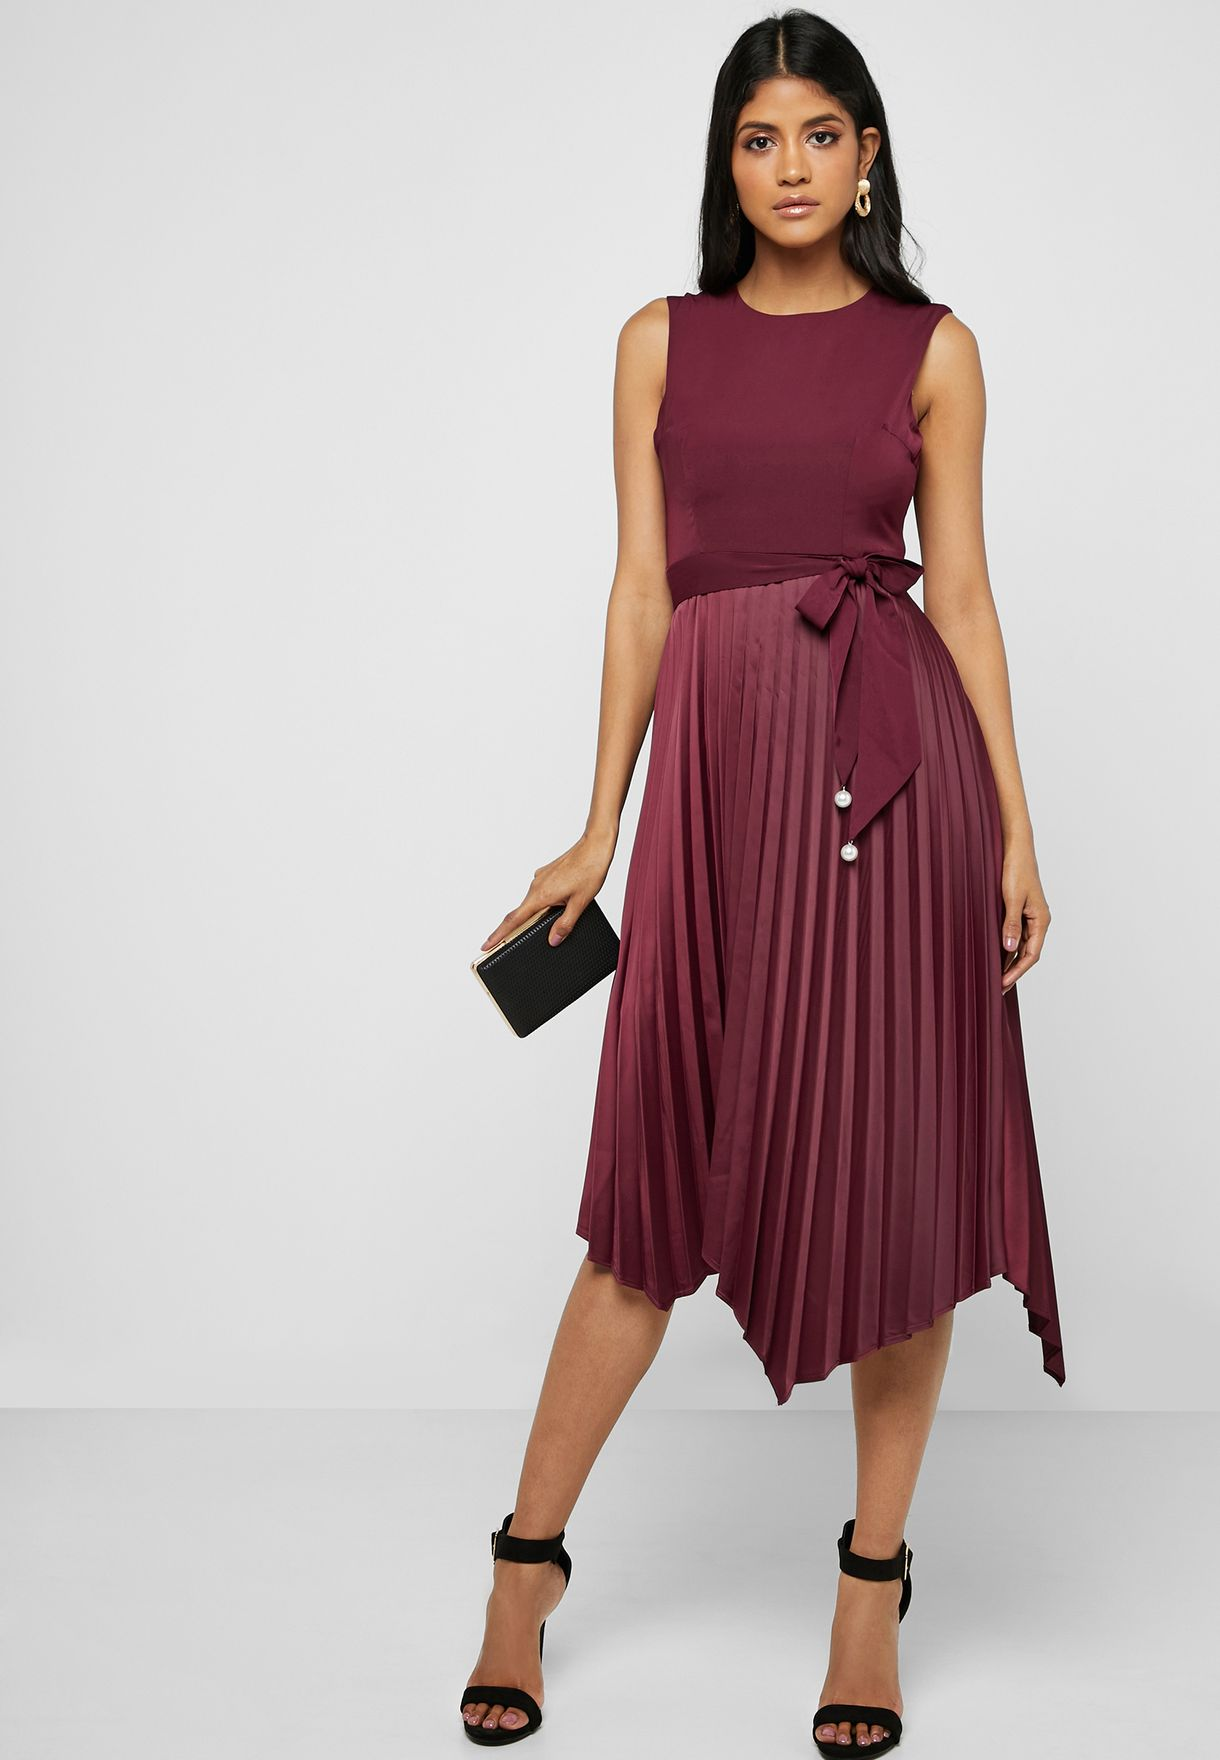 44b66e5f6245d6 Shop Ella burgundy Pleated Skirt Self Tie Midi Dres 5LYQ016 for ...